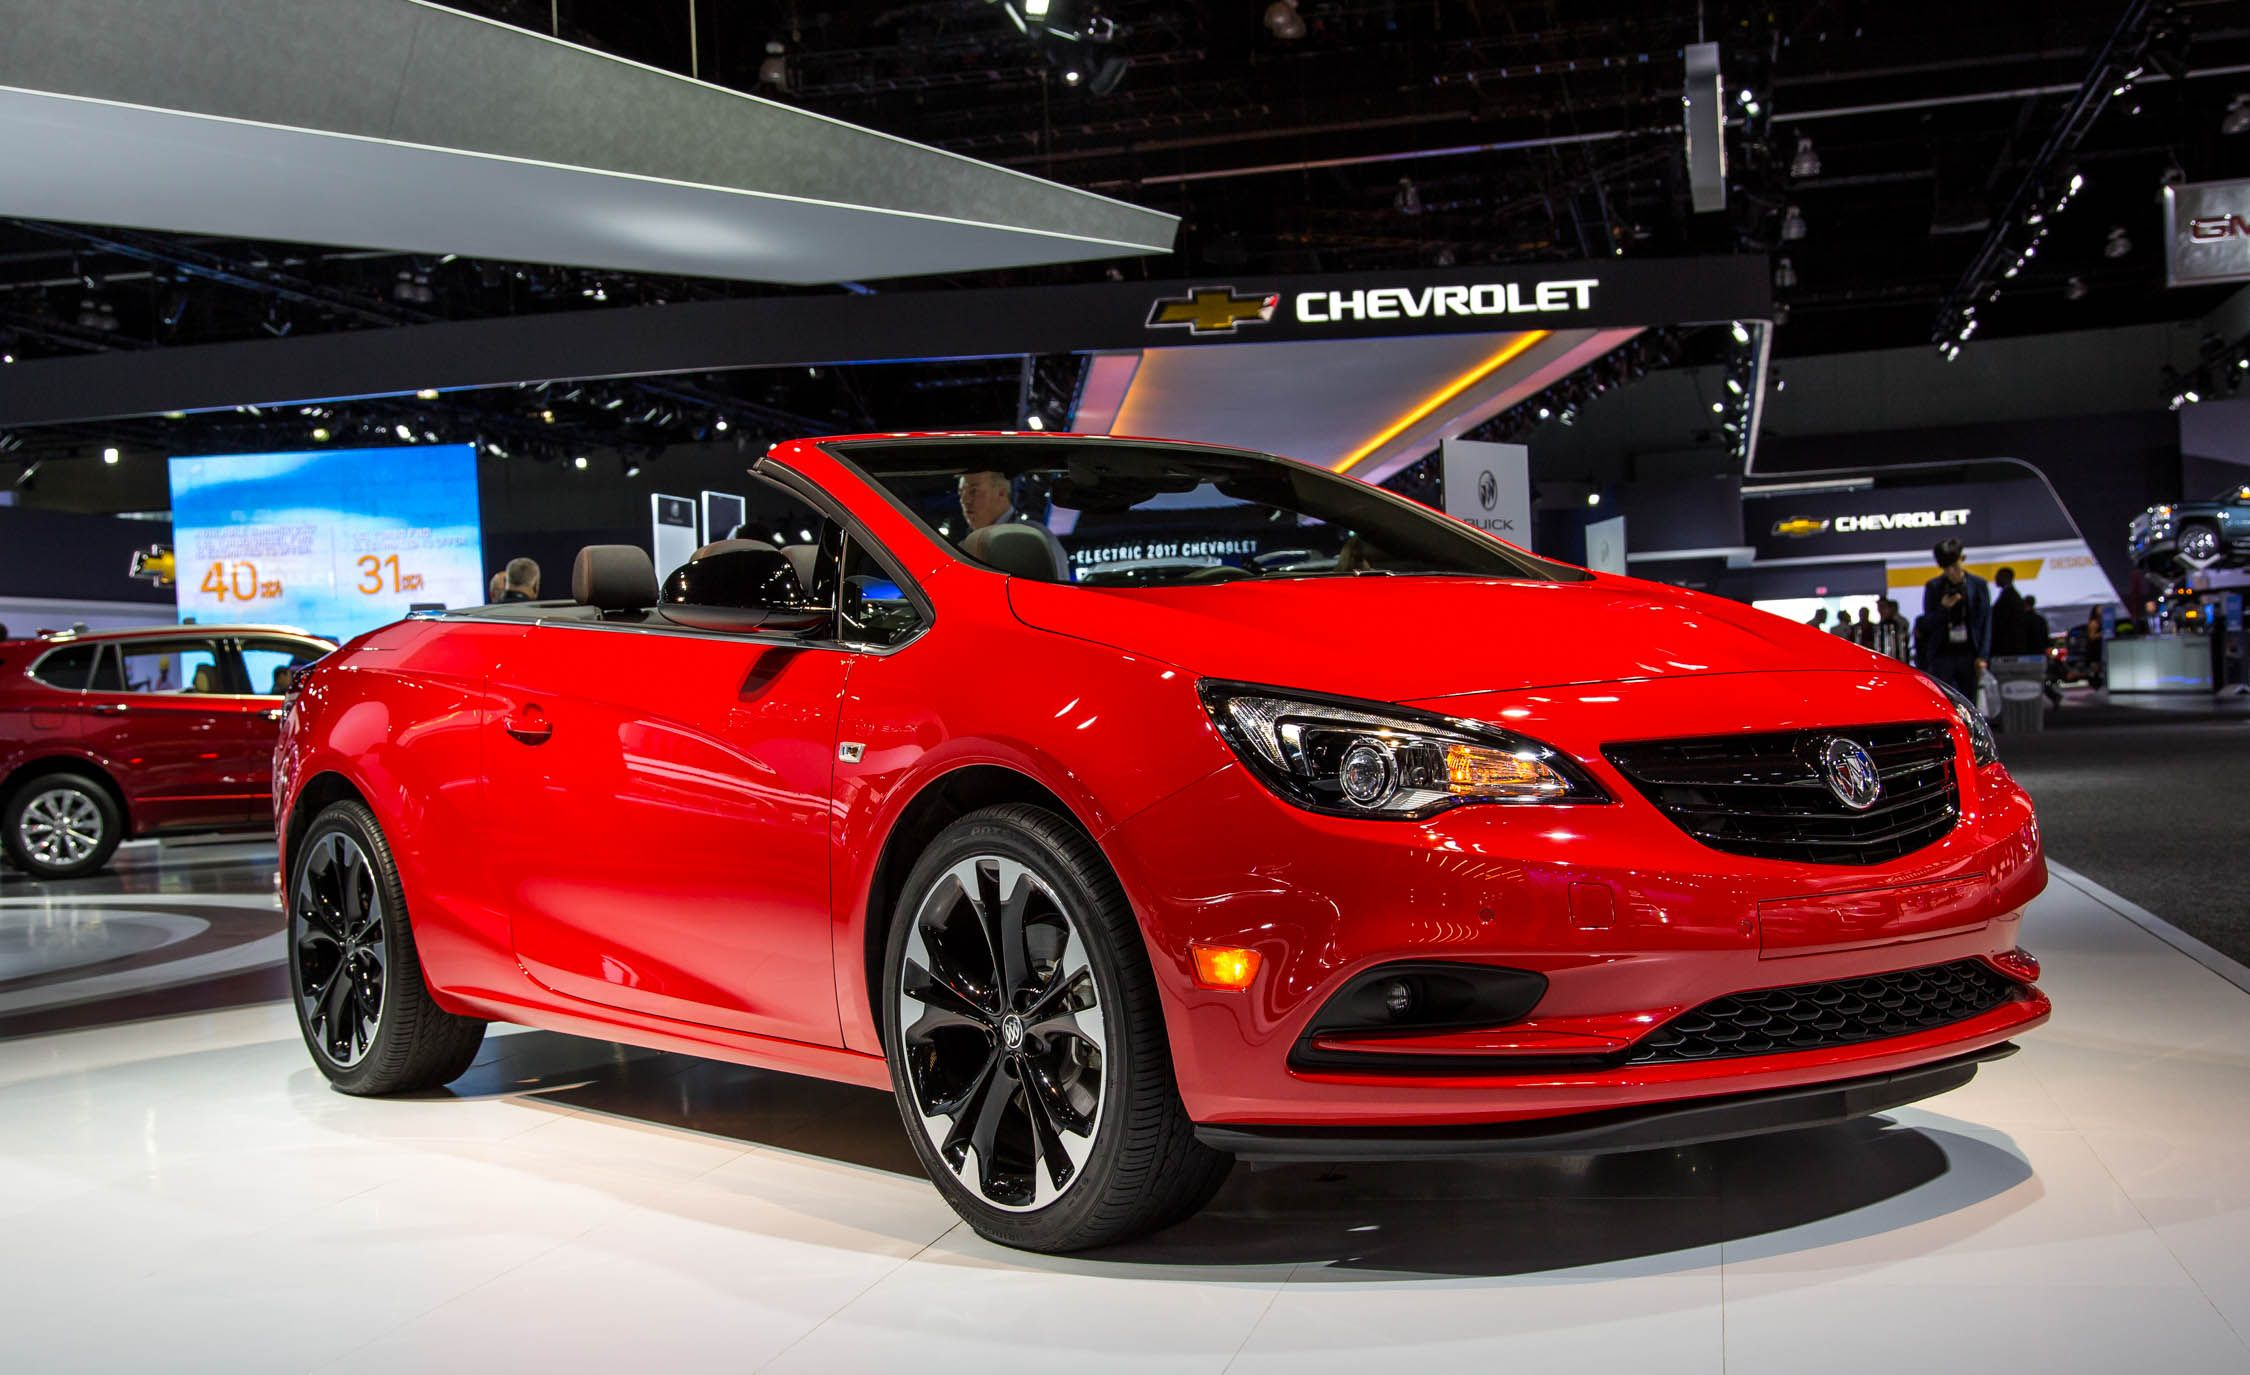 Color car los angeles - The Buick Cascada Sport Touring Or St Is Adding A Second Paint Choice To Its Color Palette With Its New Sport Red Paint Unveiled At The 2016 Los Angeles